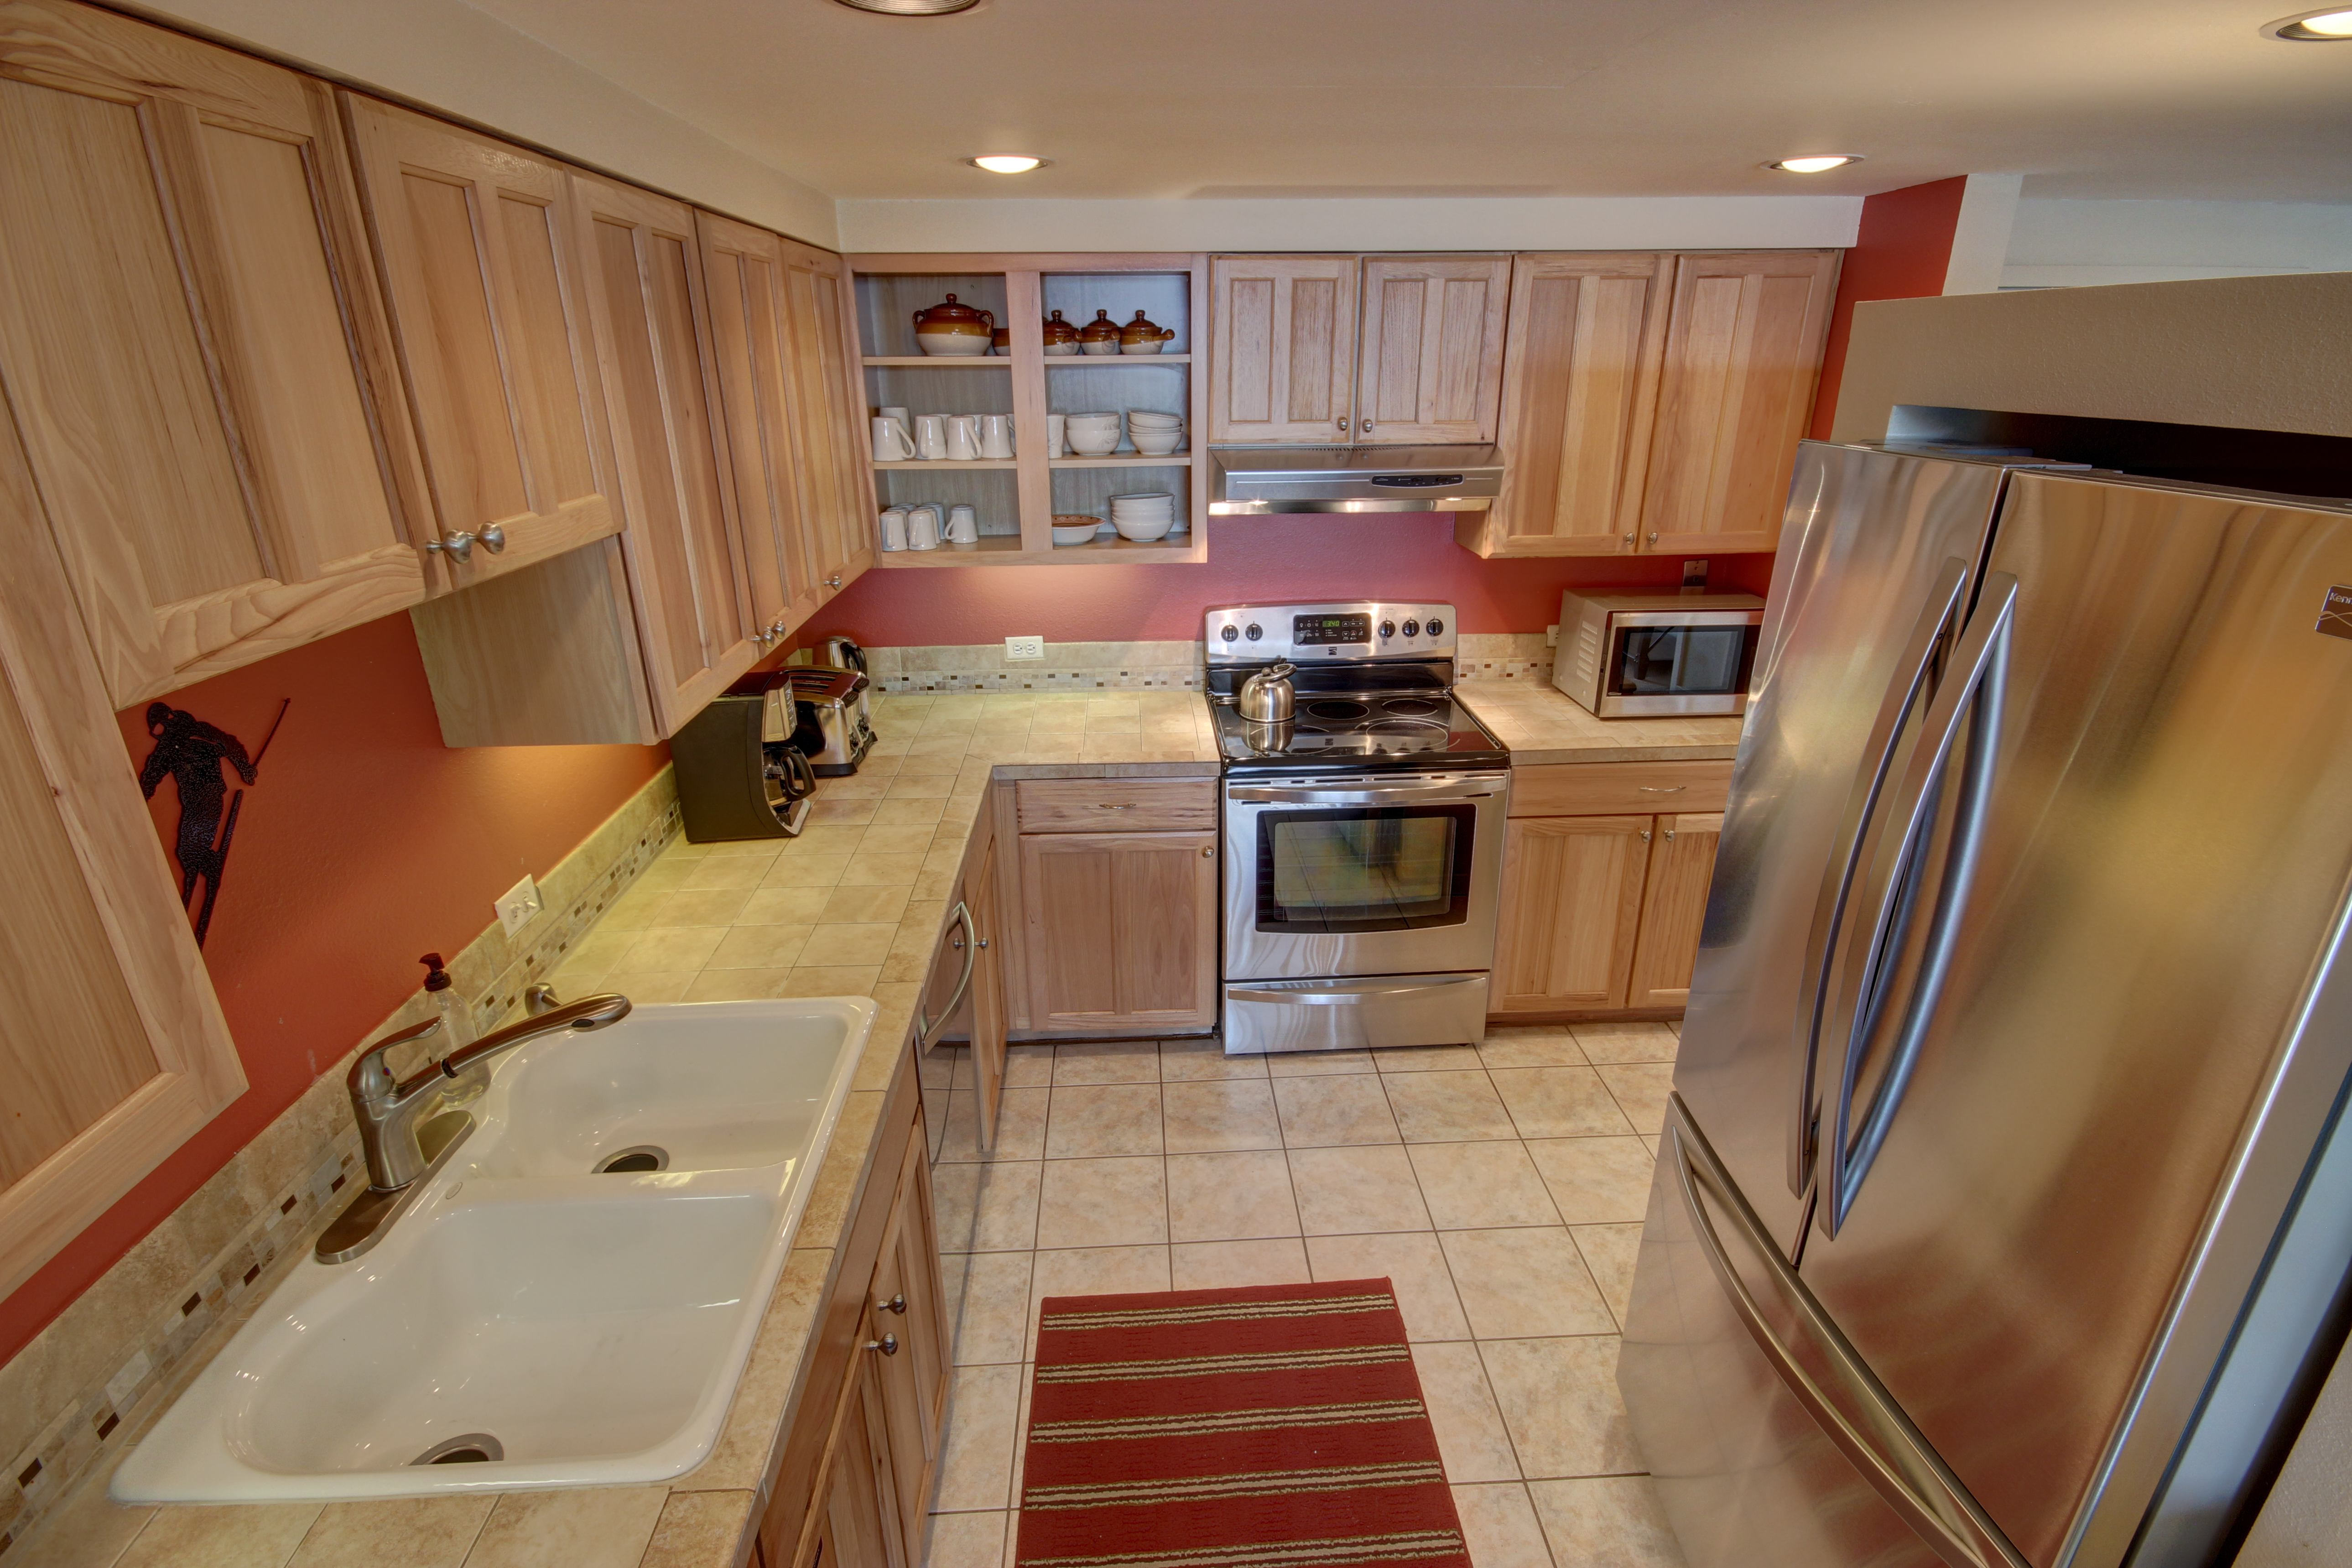 Kitchen with room to put all your appliances and have room to cook